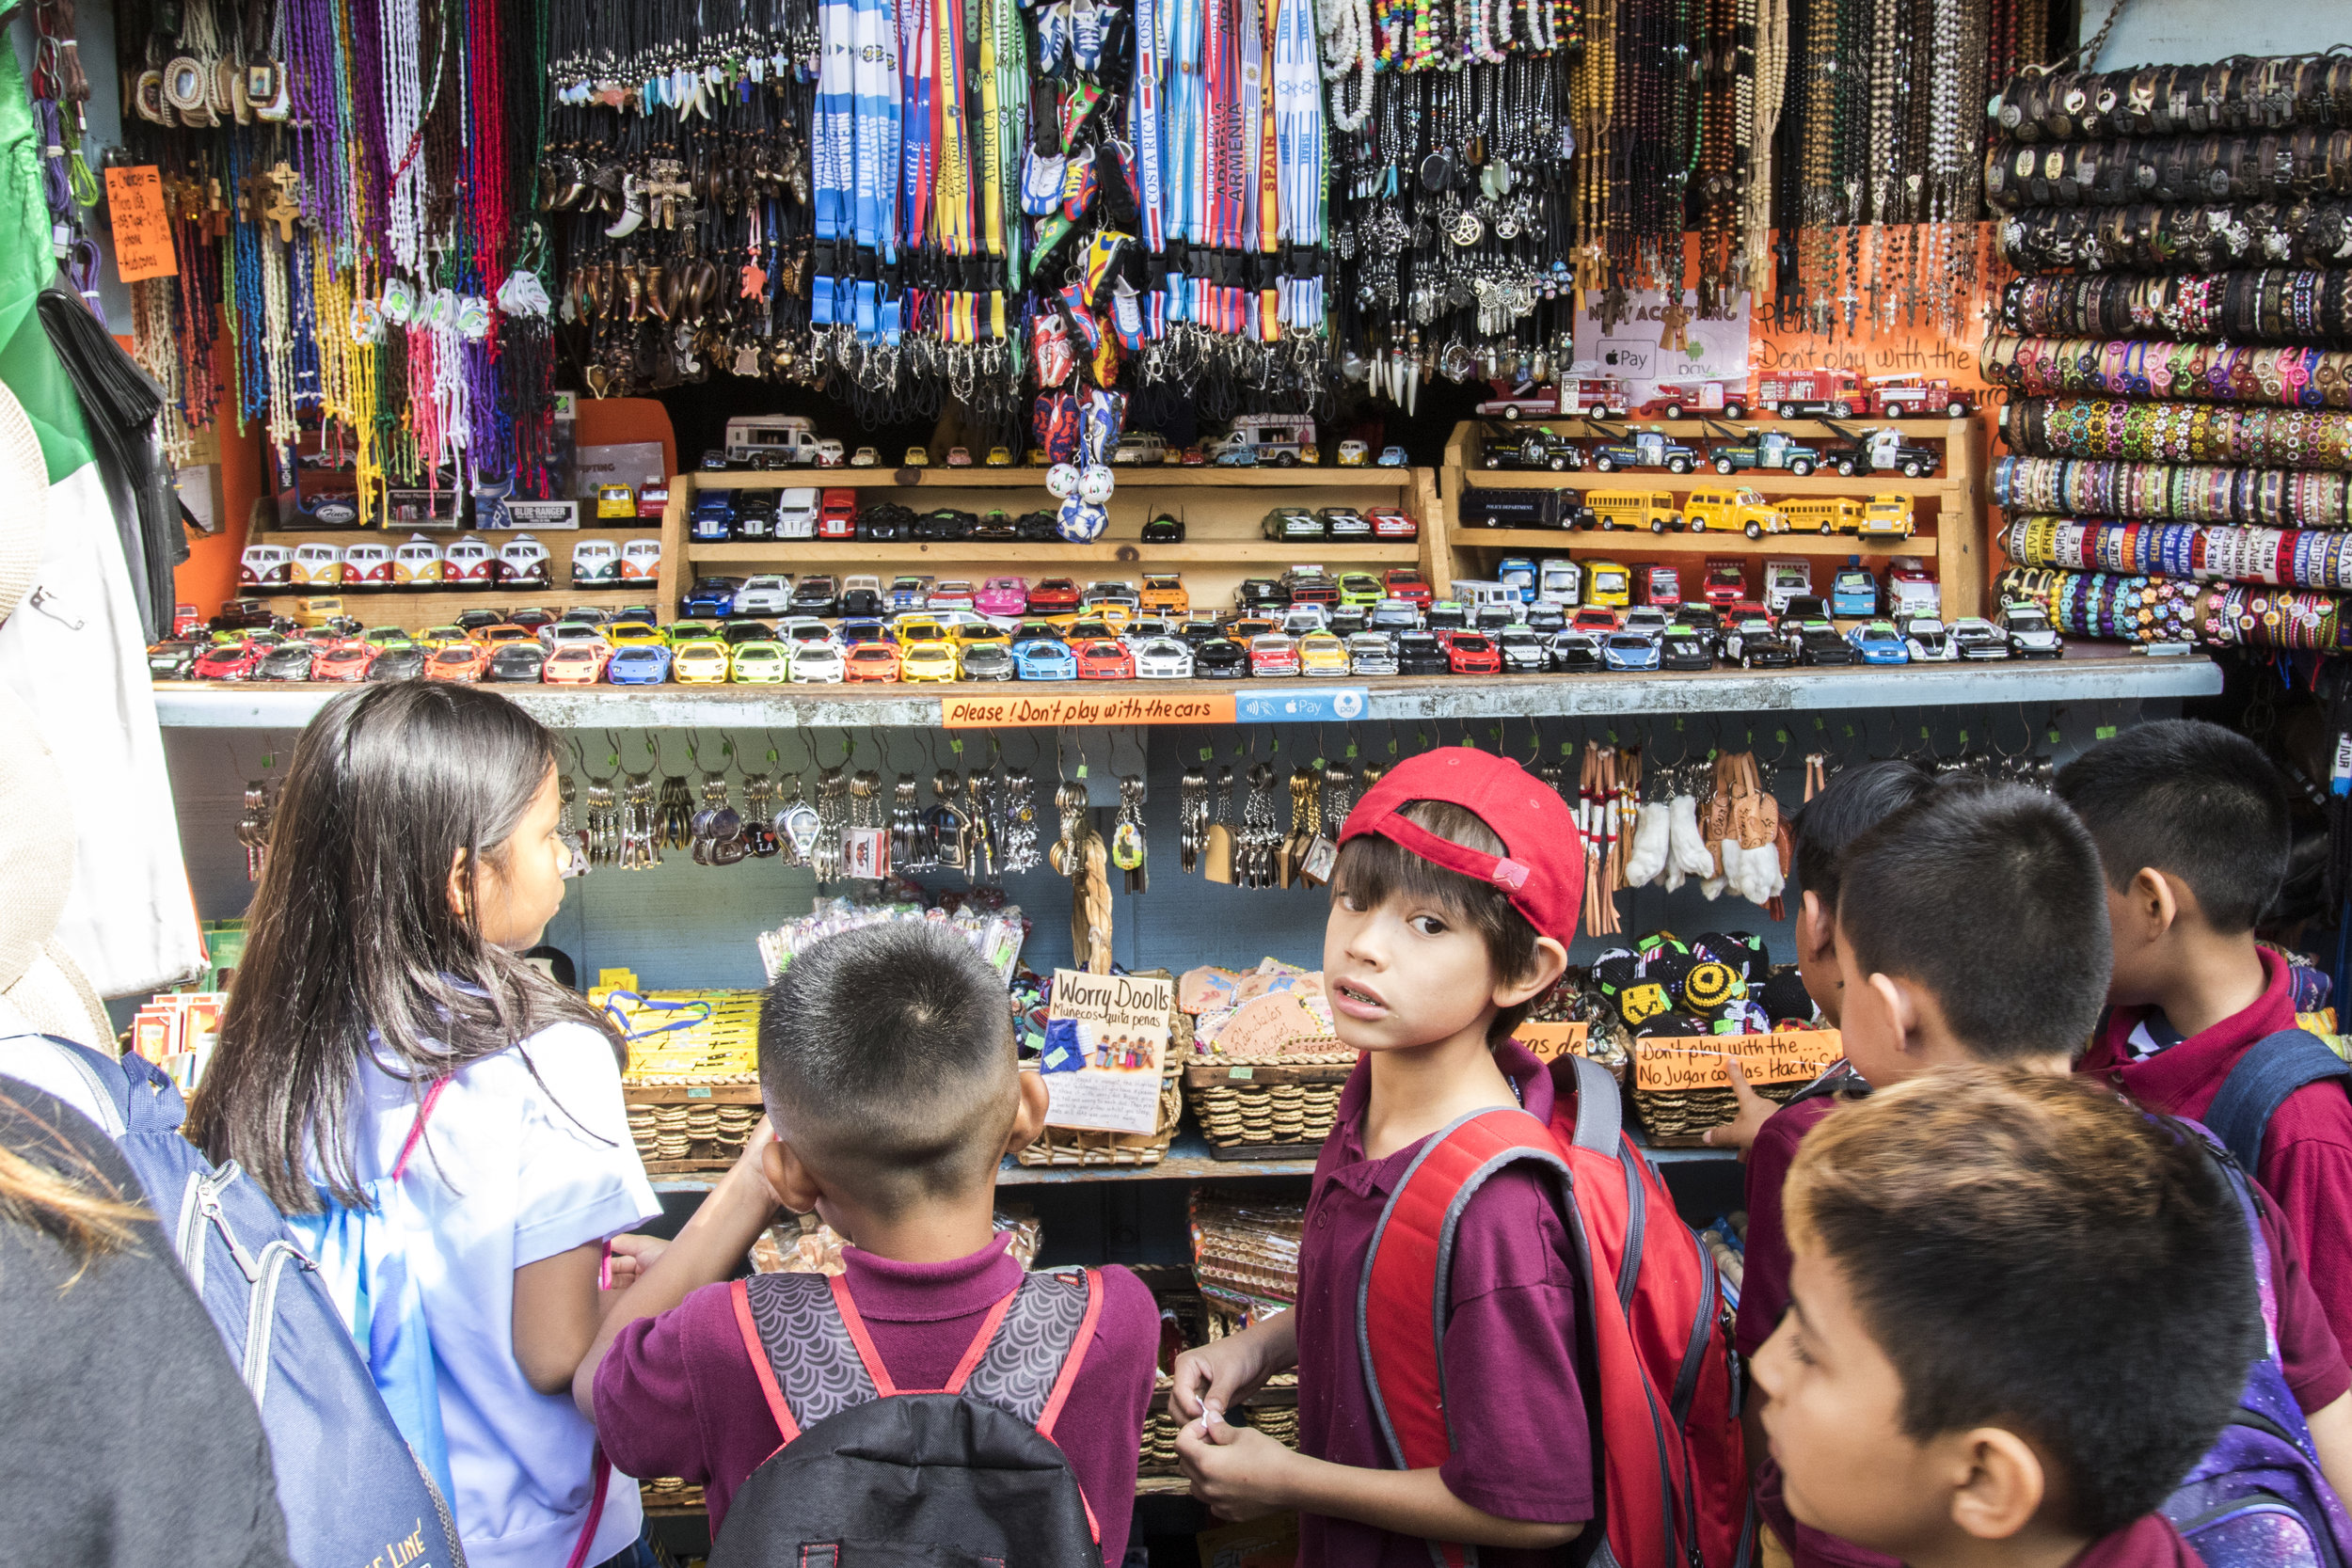 Children from the New Academy of Science and Art gather around Munoz Mexican Store, one of the many shops on Olvera Street during a school trip. Children are some of the most frequent buyers of goods on Olvera street. Most people just buy food and drinks, but children are consistently drawn into the colorful trinkets and accessories. According to shop owners, school tours are becoming less frequent due to inefficient funding. (Zane Meyer-Thornton/Corsair Photo)